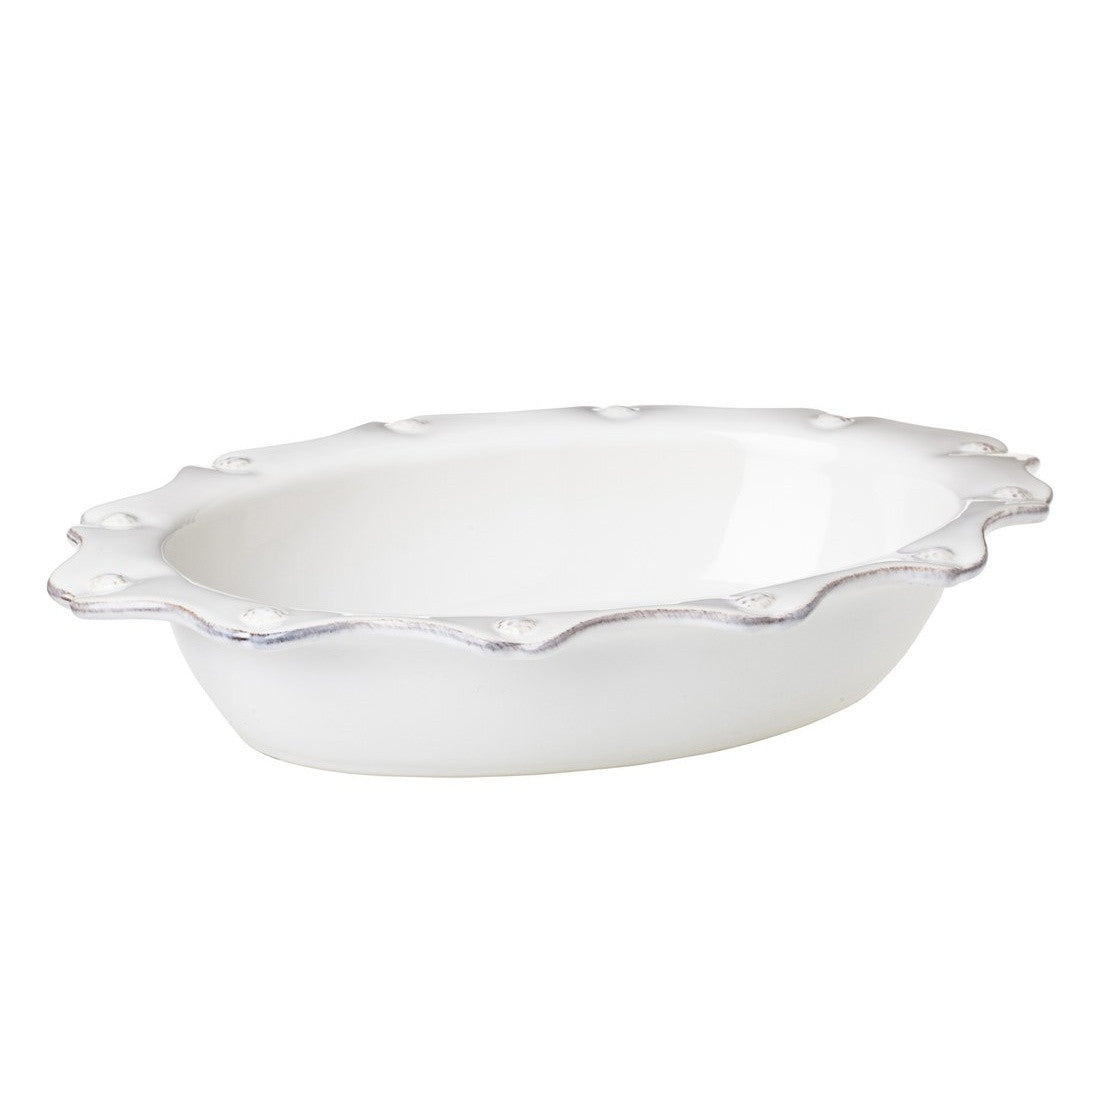 Berry & Thread White Small Oval Baking Dish